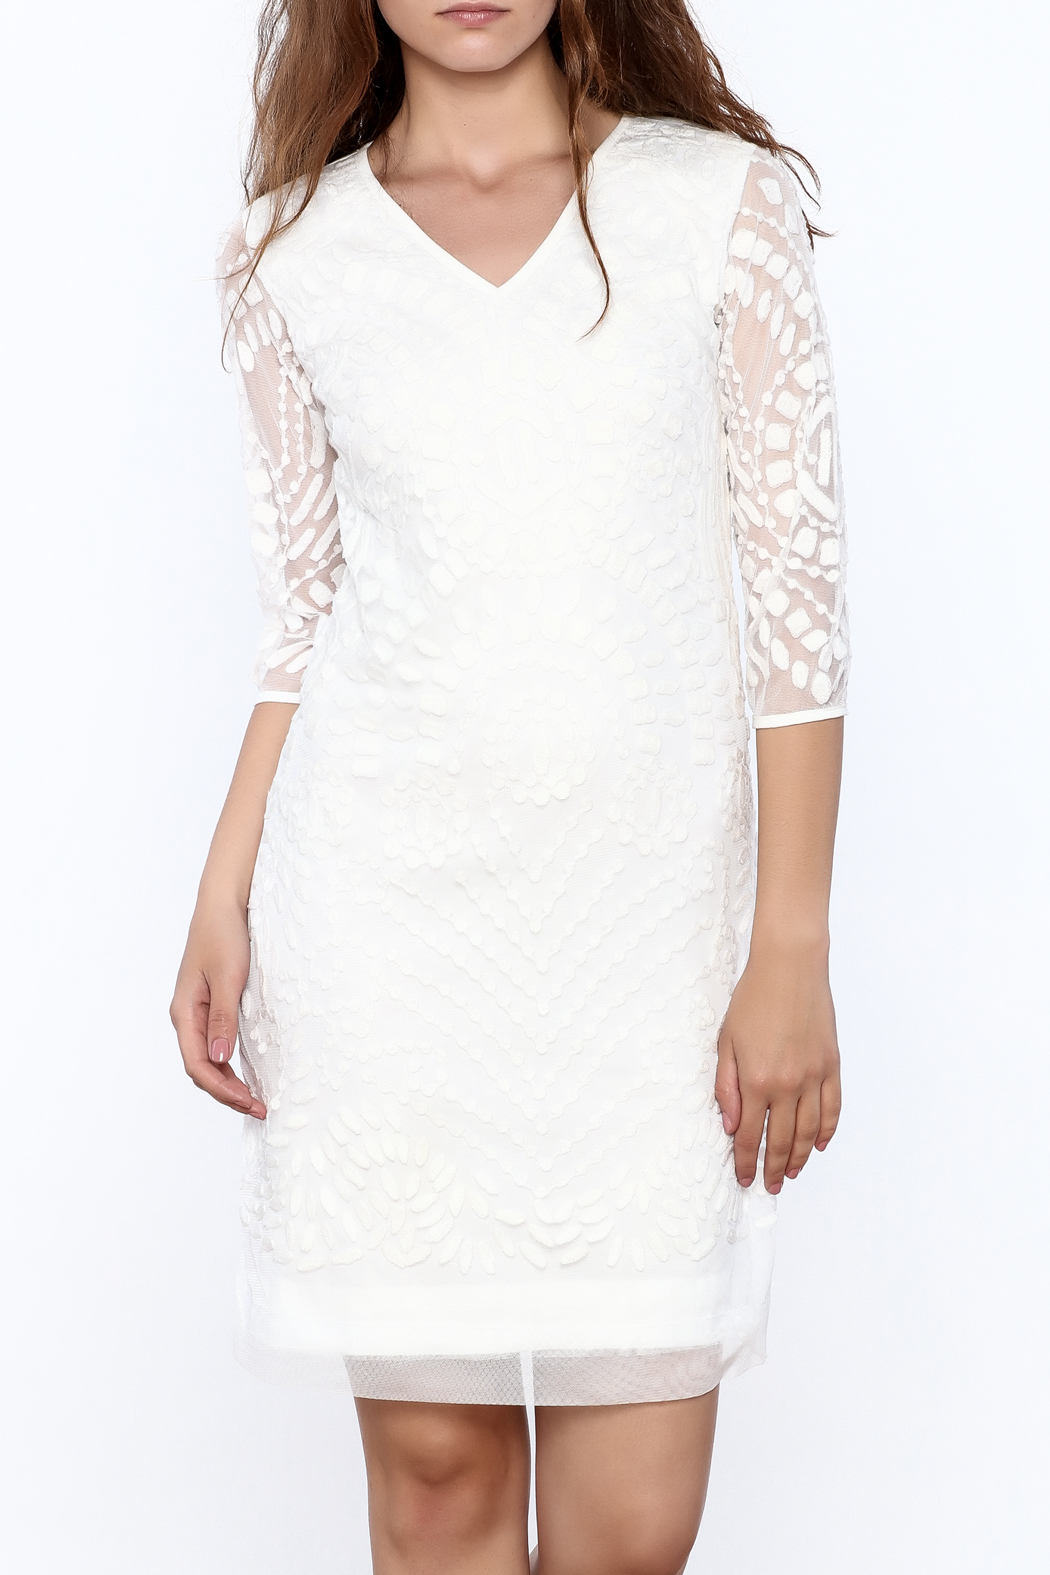 Almatrichi White Lace Dress - Main Image